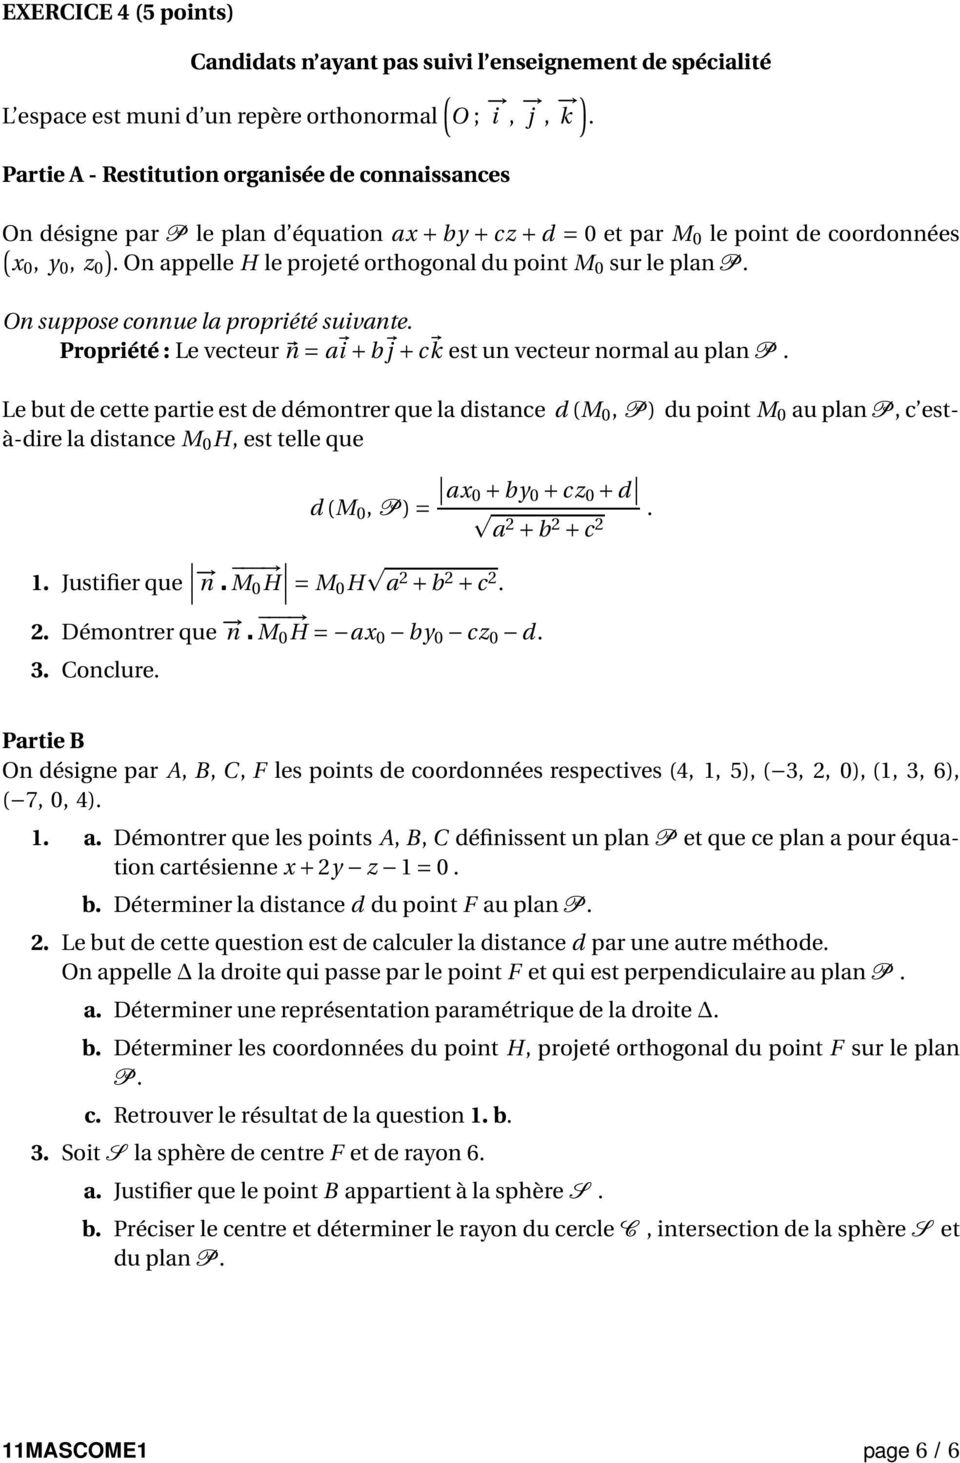 On appelle H le projeté orthogonal du point M0 sur le plan P. On suppose connue la propriété suivante. Propriété : Le vecteur n= a i + b j + c k est un vecteur normal au plan P.